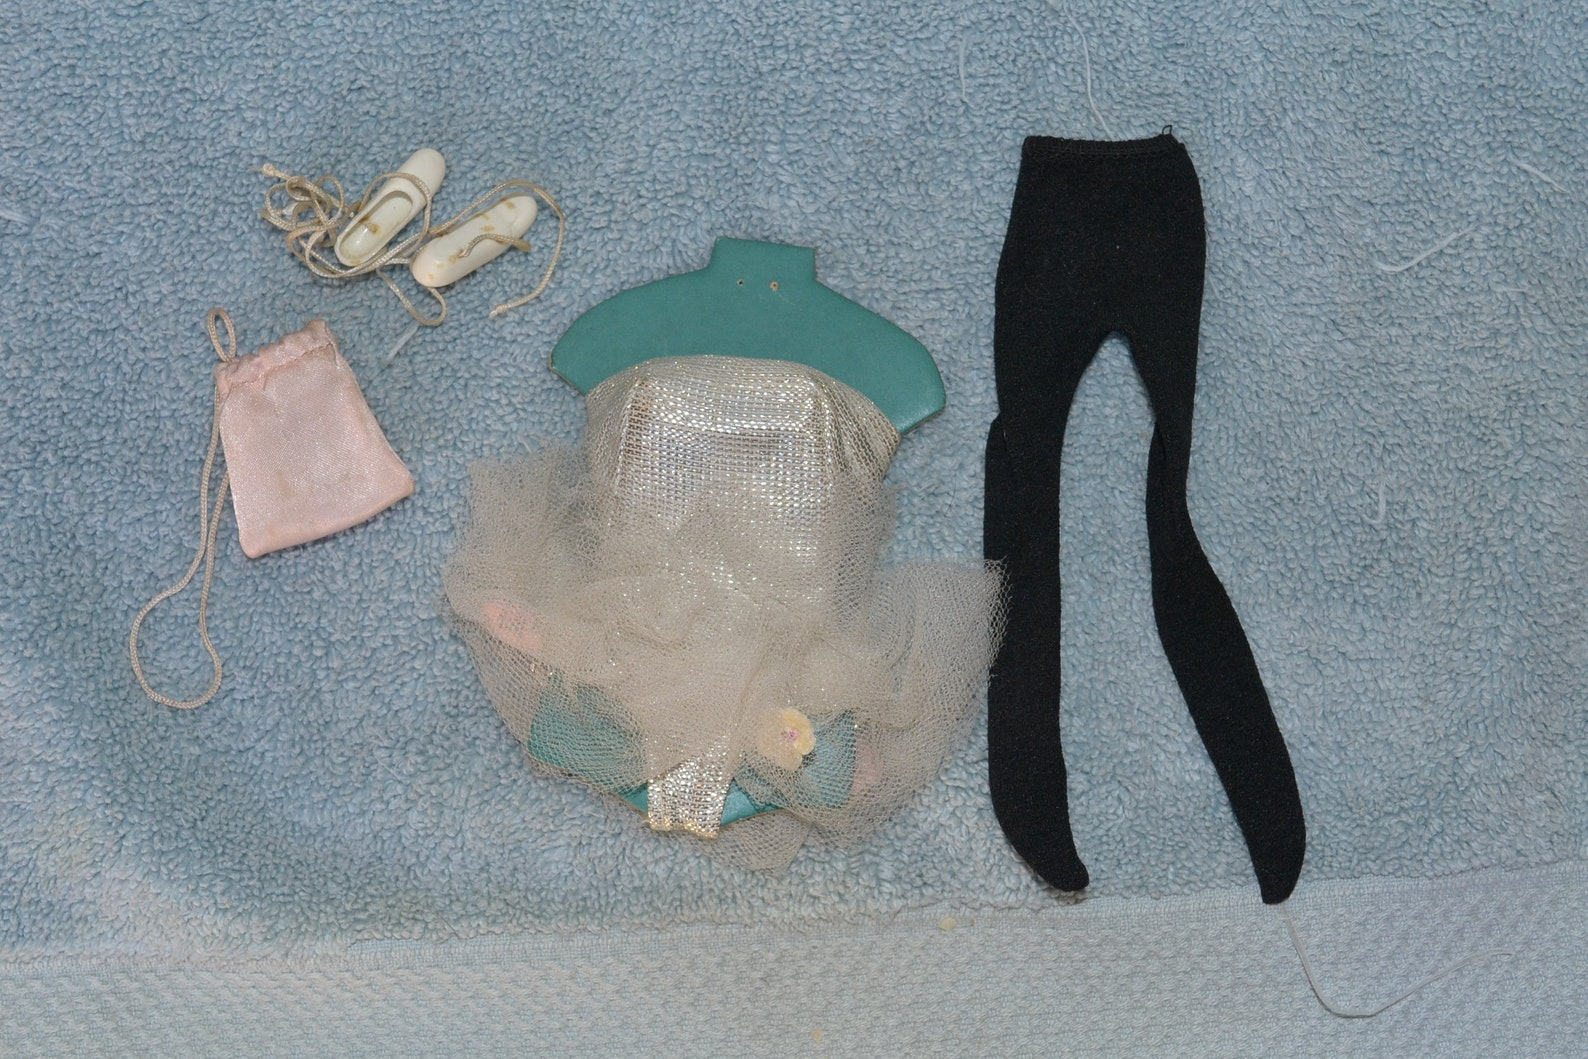 still on original card vintage barbie ballerina #989 fashion from 1961 with leotard hose, ballet shoes, bag